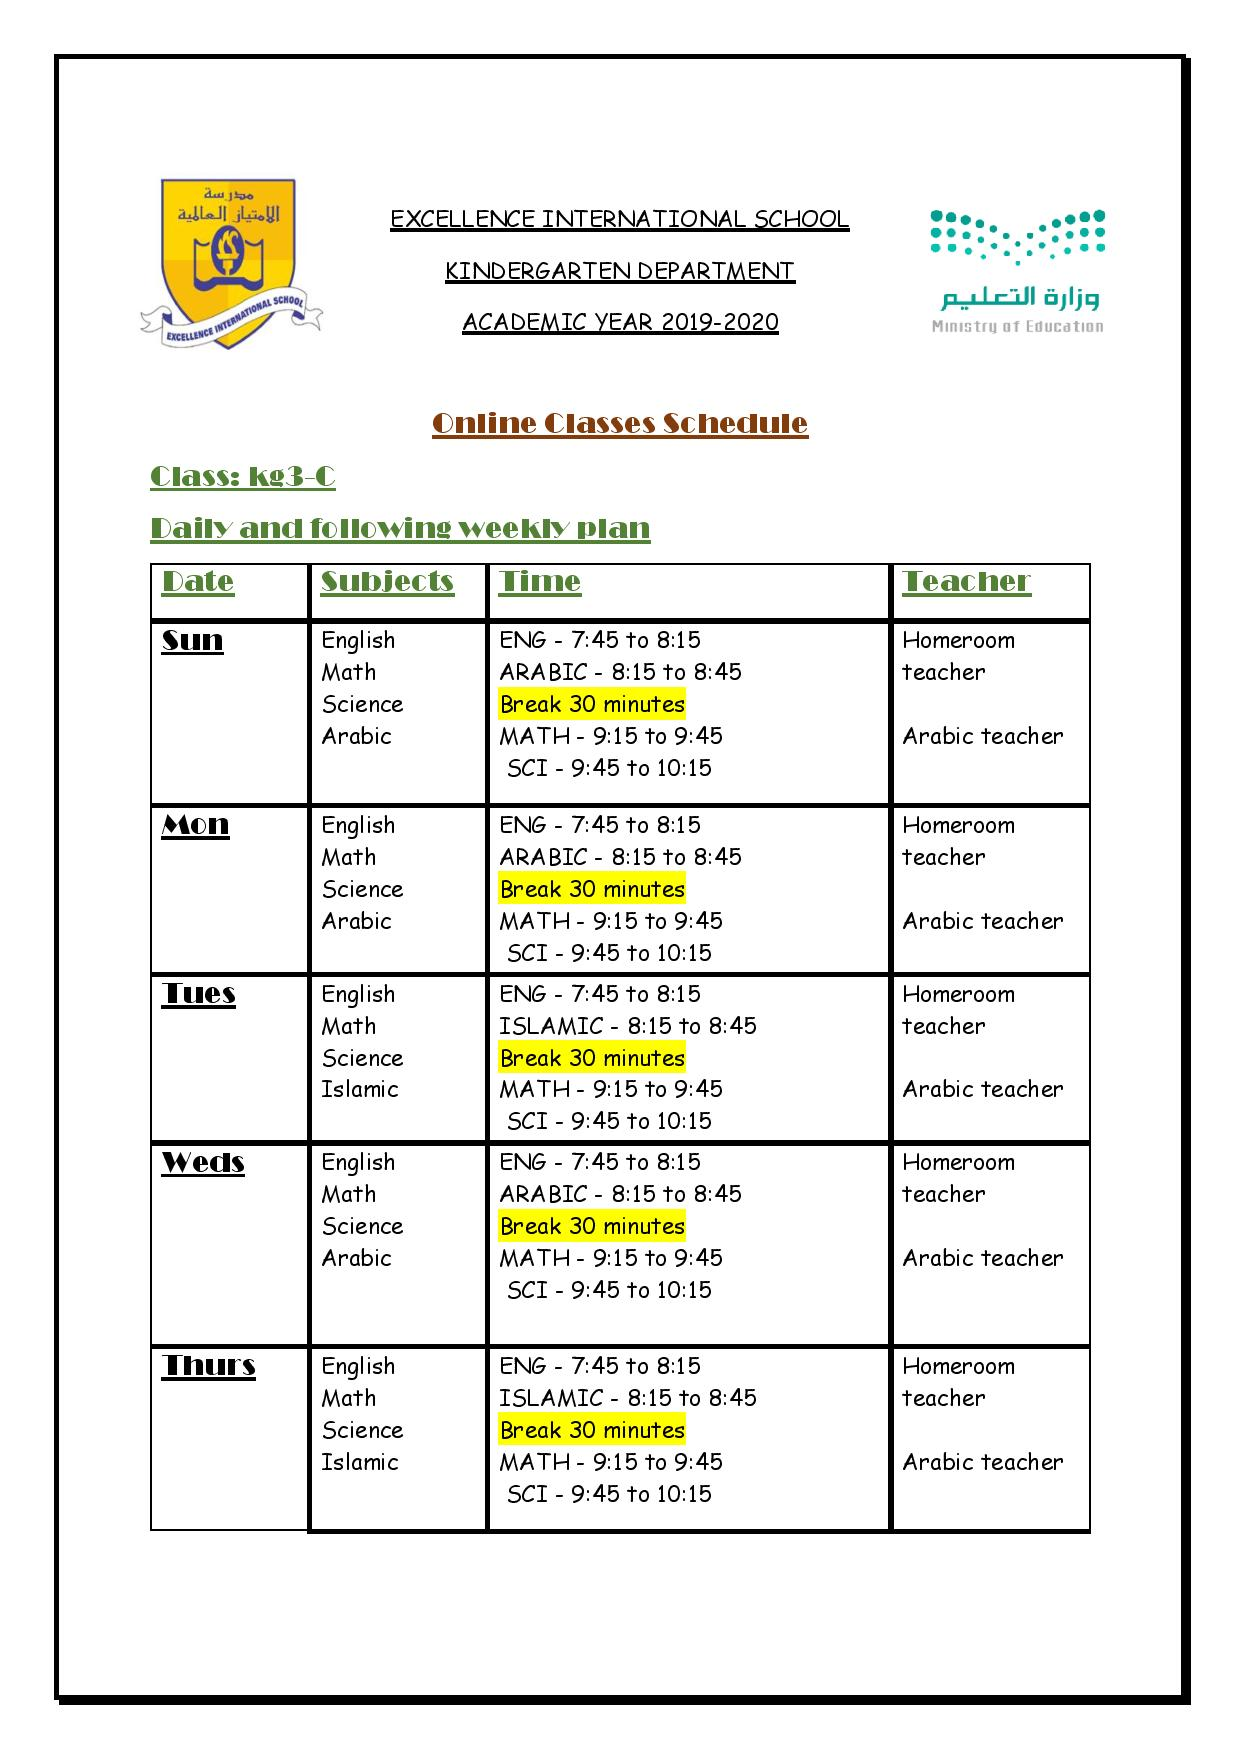 Online Classes Schedule 2 page 006 cfd16